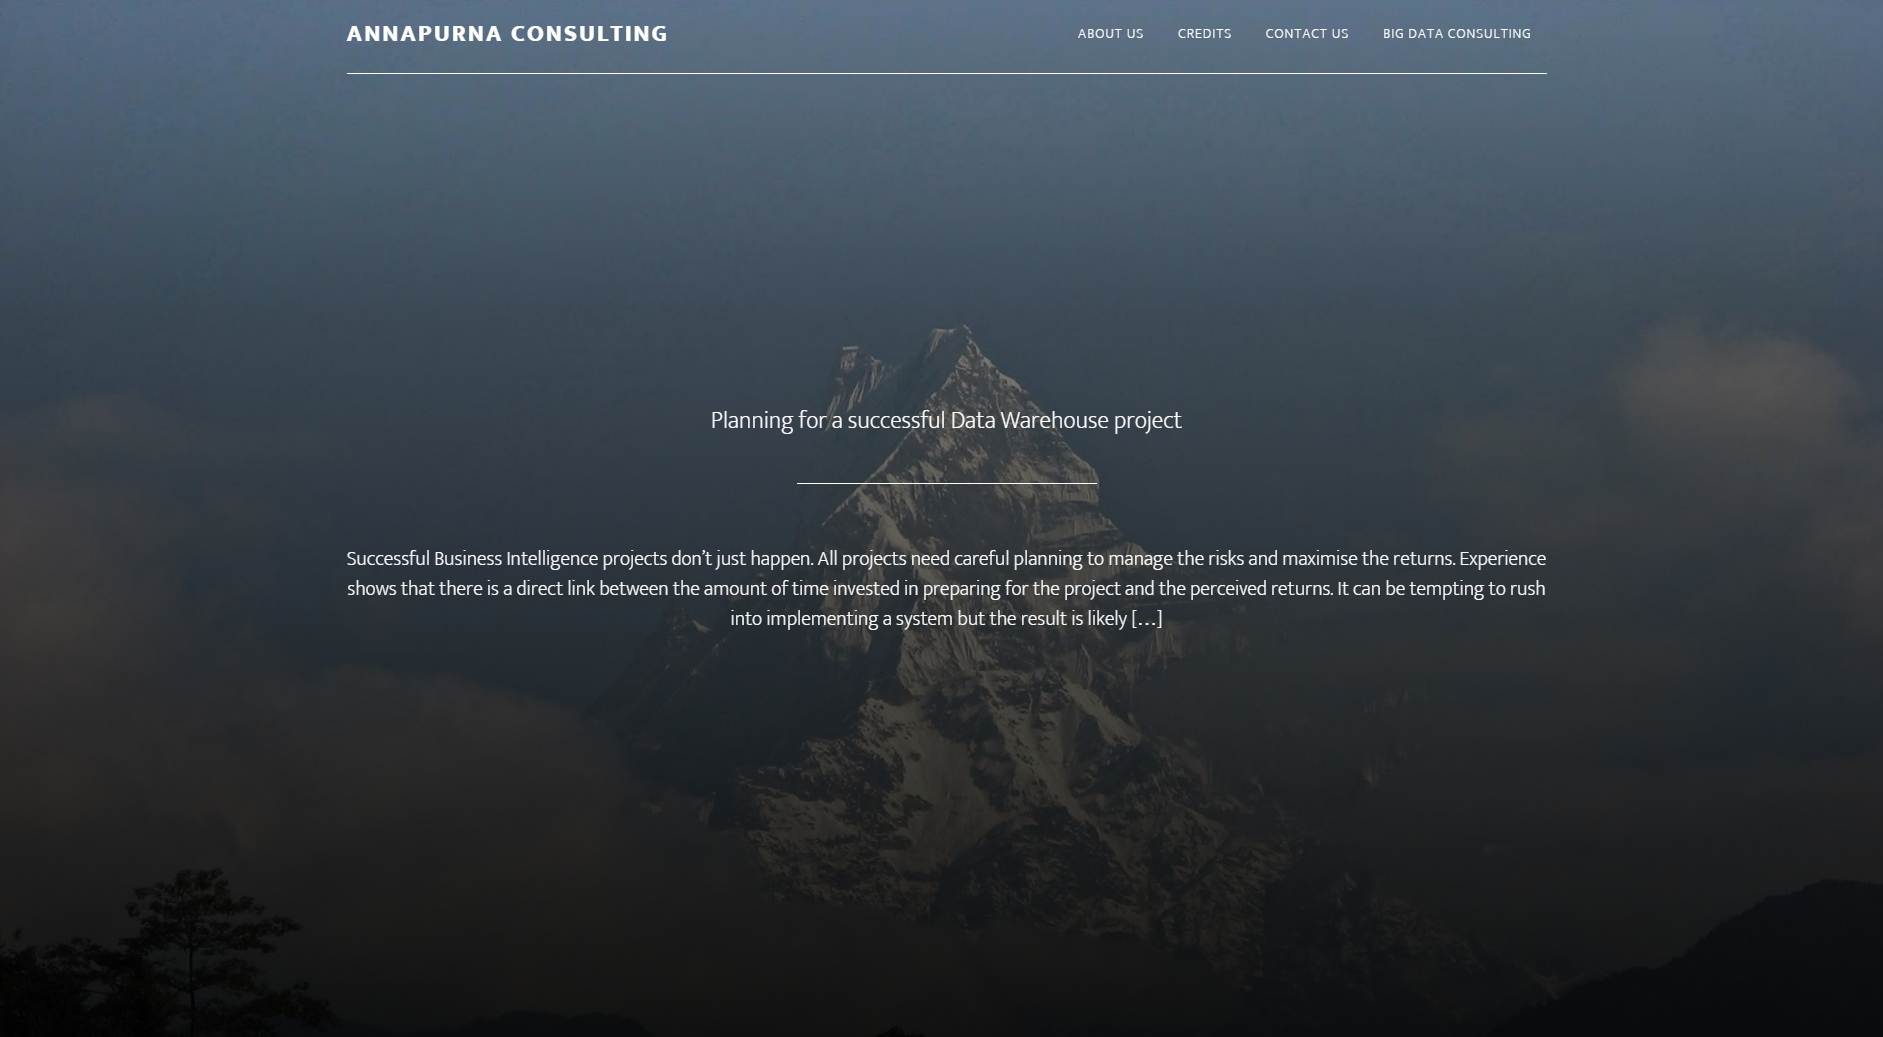 annapurna consulting recruitment